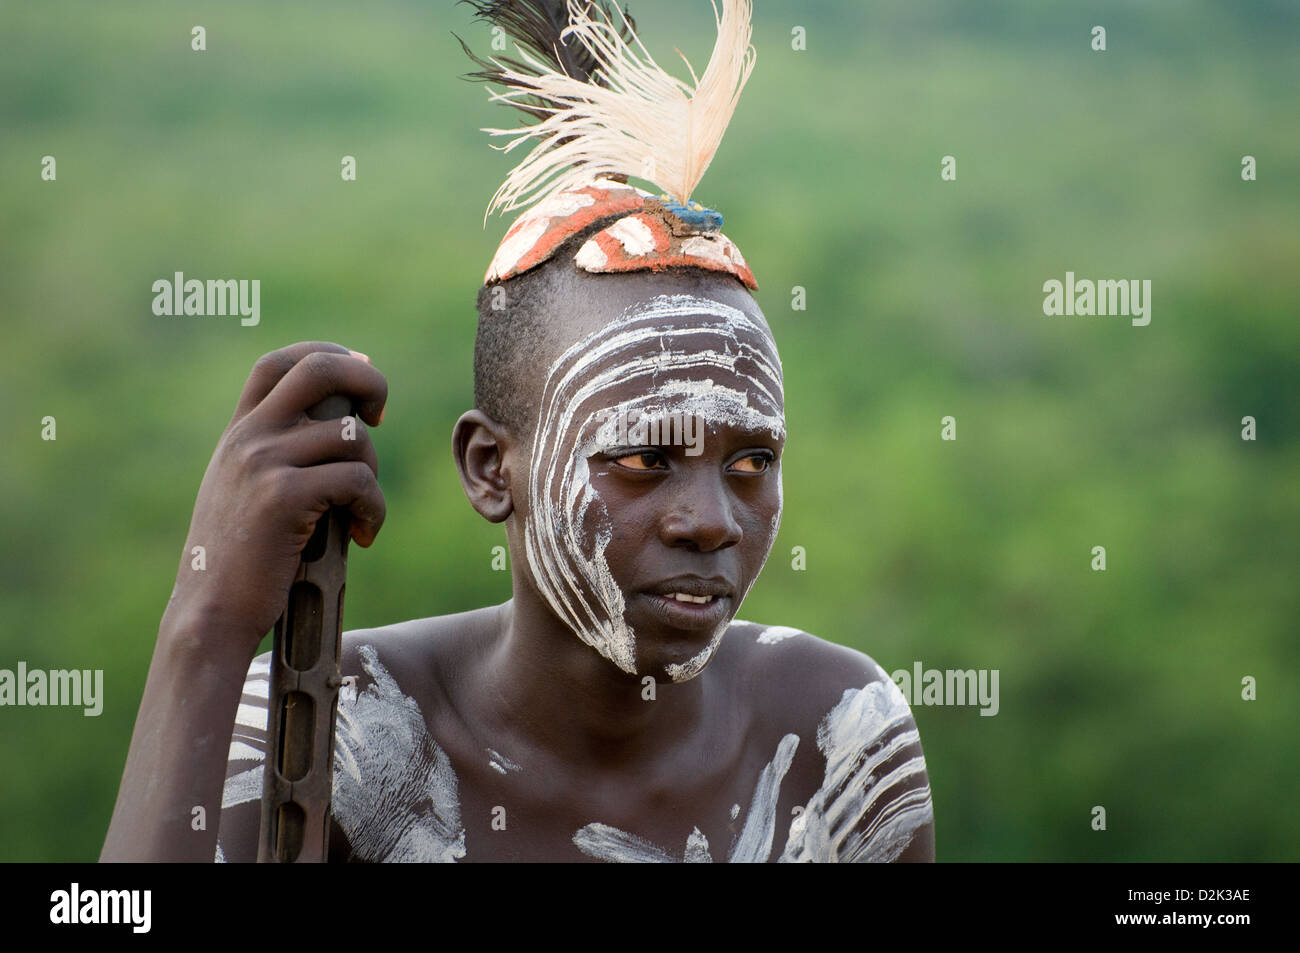 Portrait of Kara man with body painting and headdress-holding rifle - Stock Image